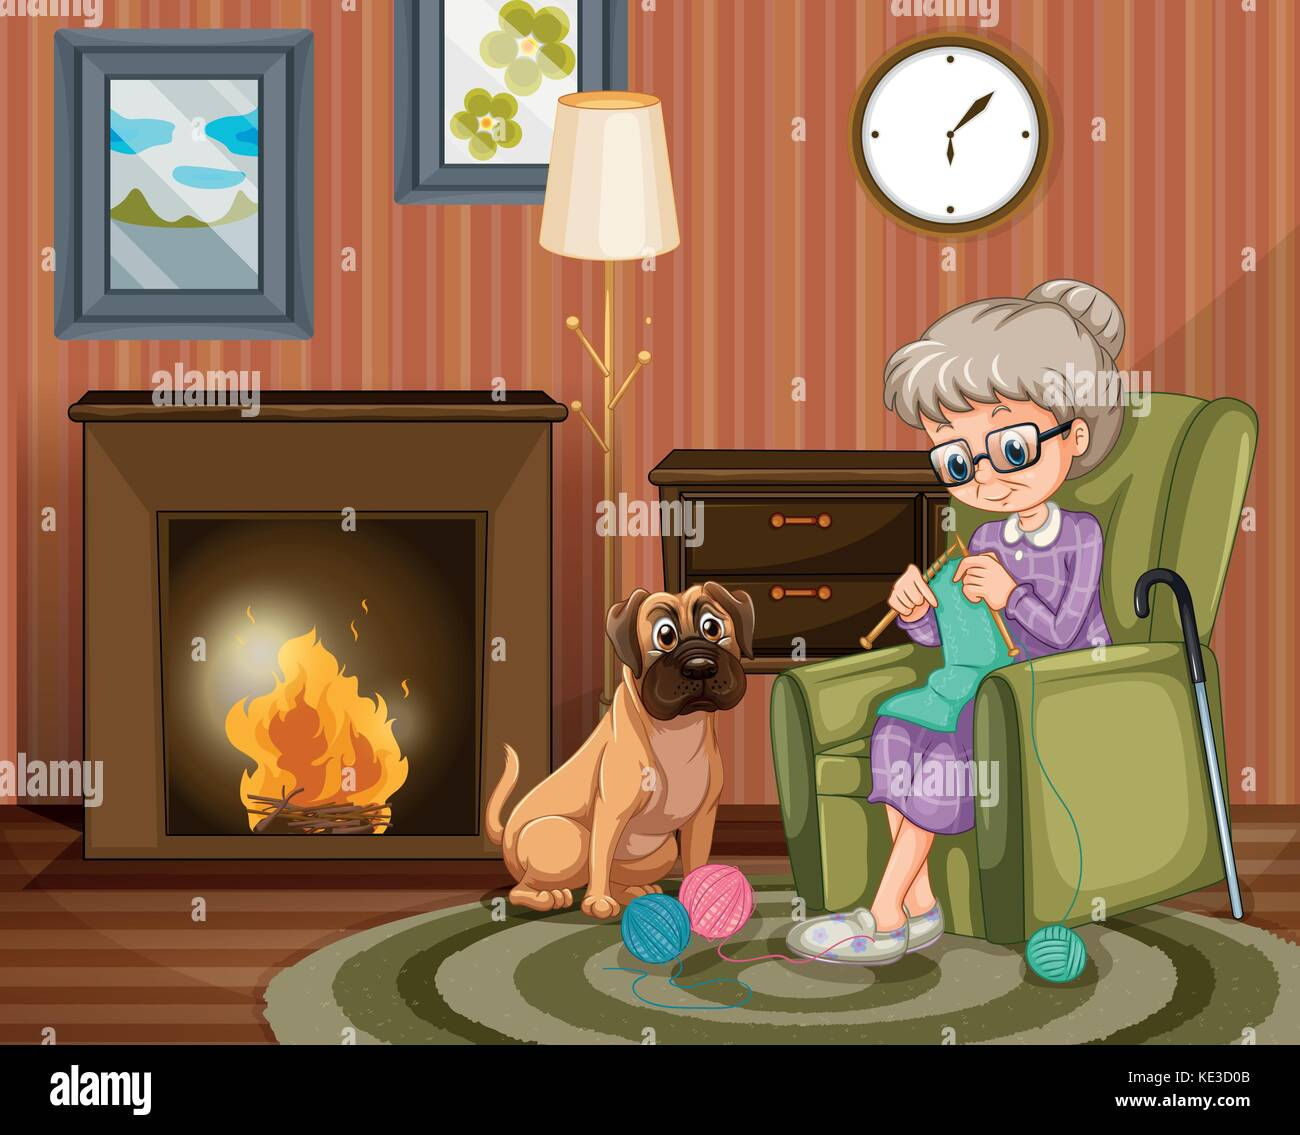 Old woman sitting knitting with dog besides illustration - Stock Vector